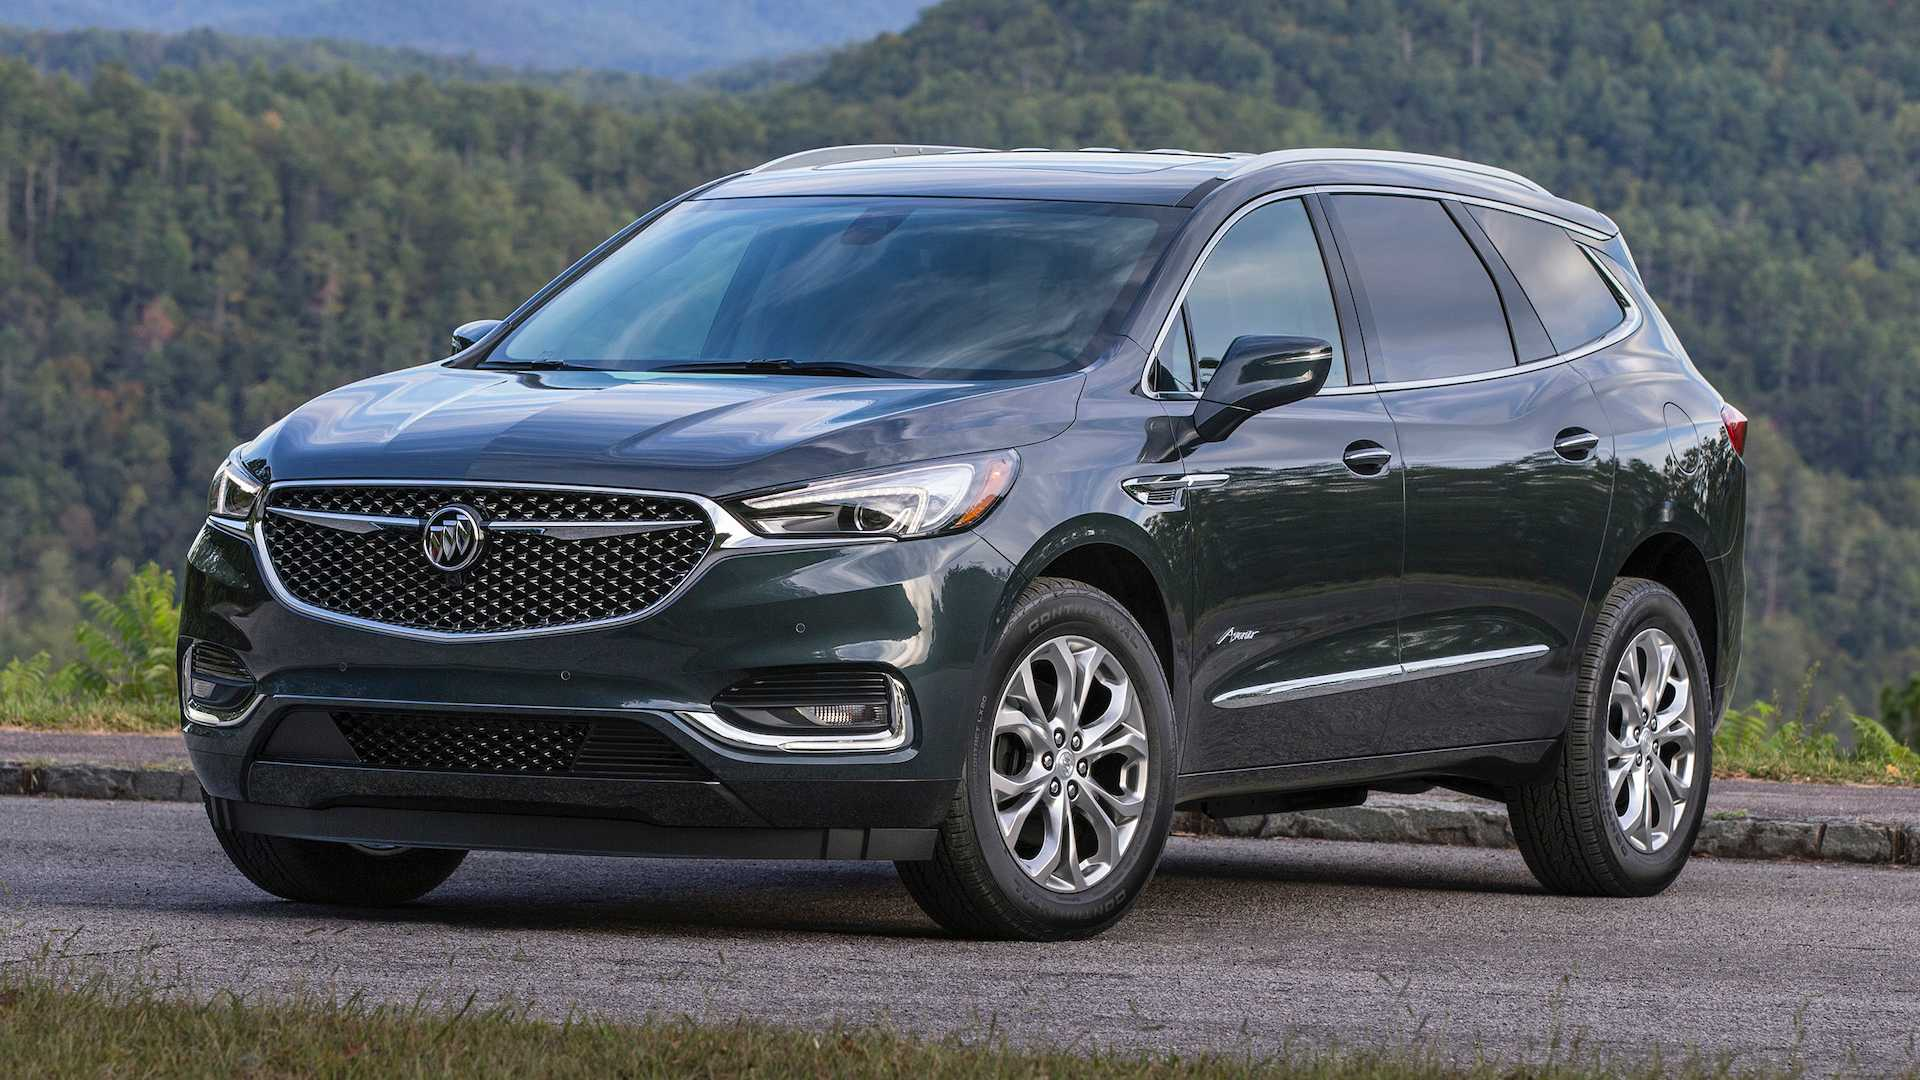 Buick Offering Crazy Deals On Its Entire Range, Up To $7,700 Off